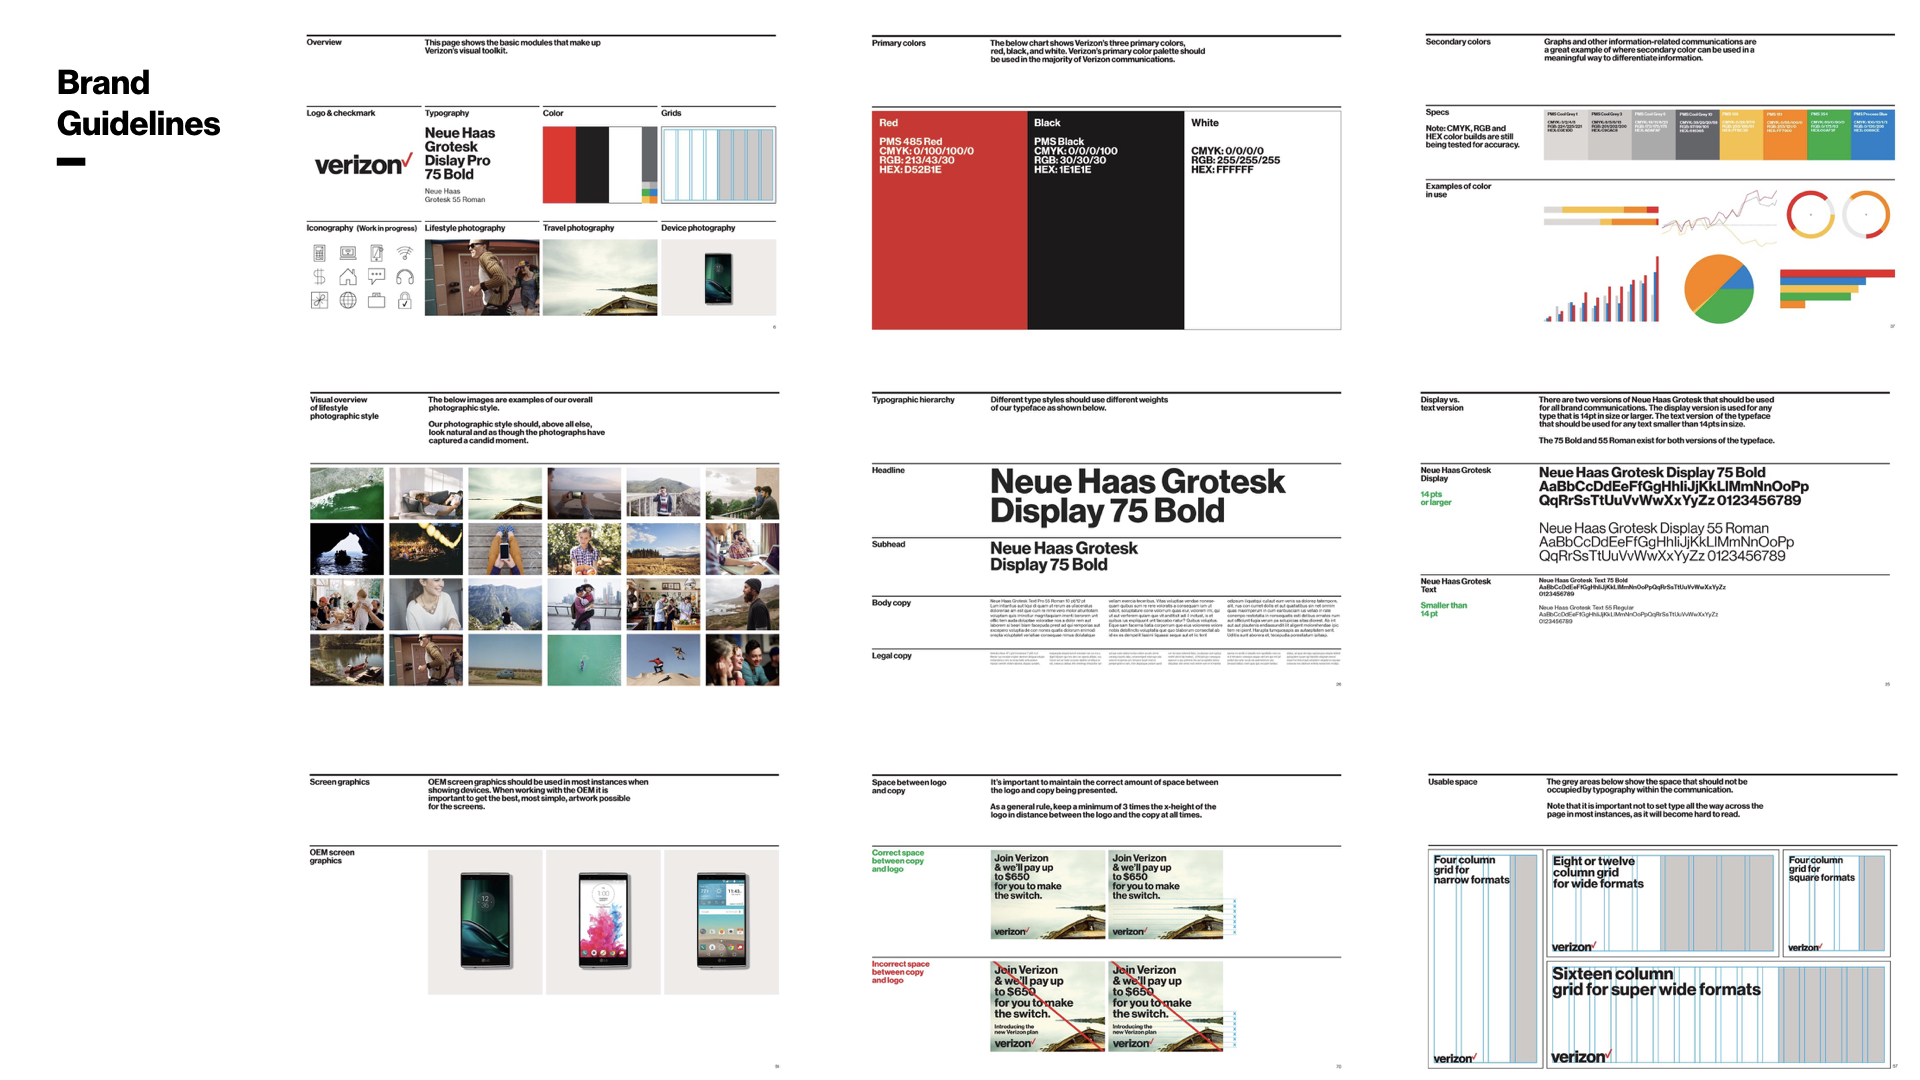 The initial brand guidelines (above) given to my team was heavily focused on Desktop experience.